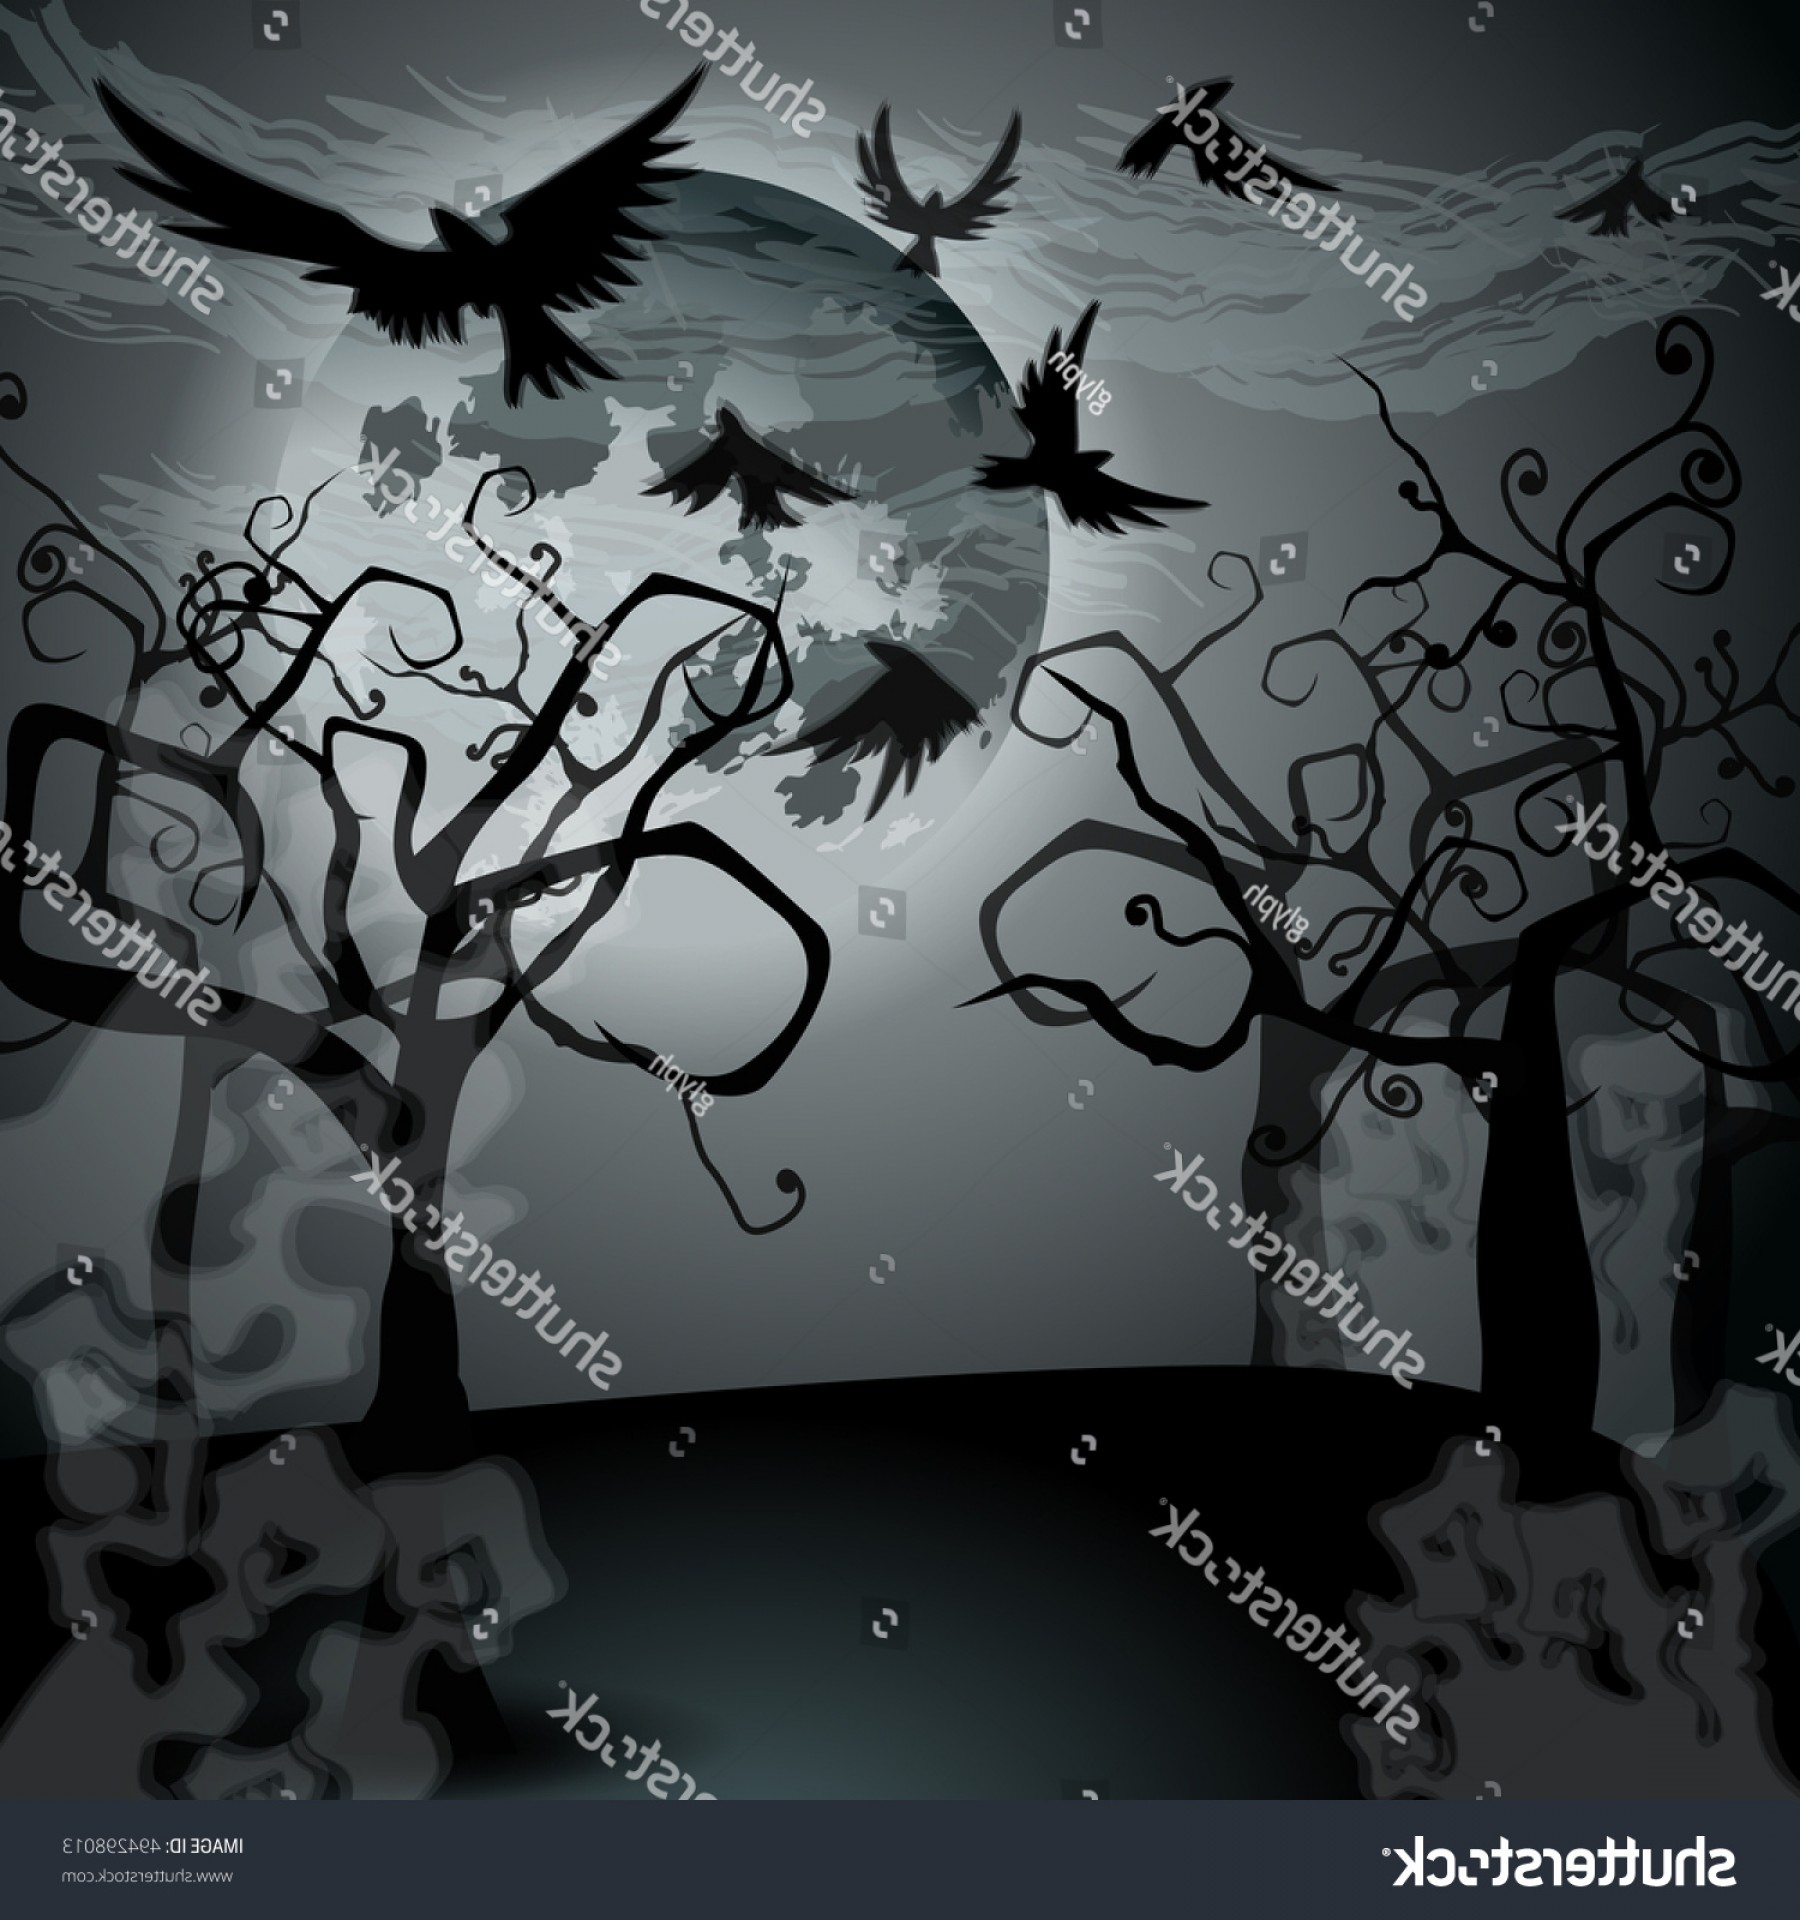 Full Moon Werewolf Vector 900: Vector Halloween Illustration Full Moon Crows